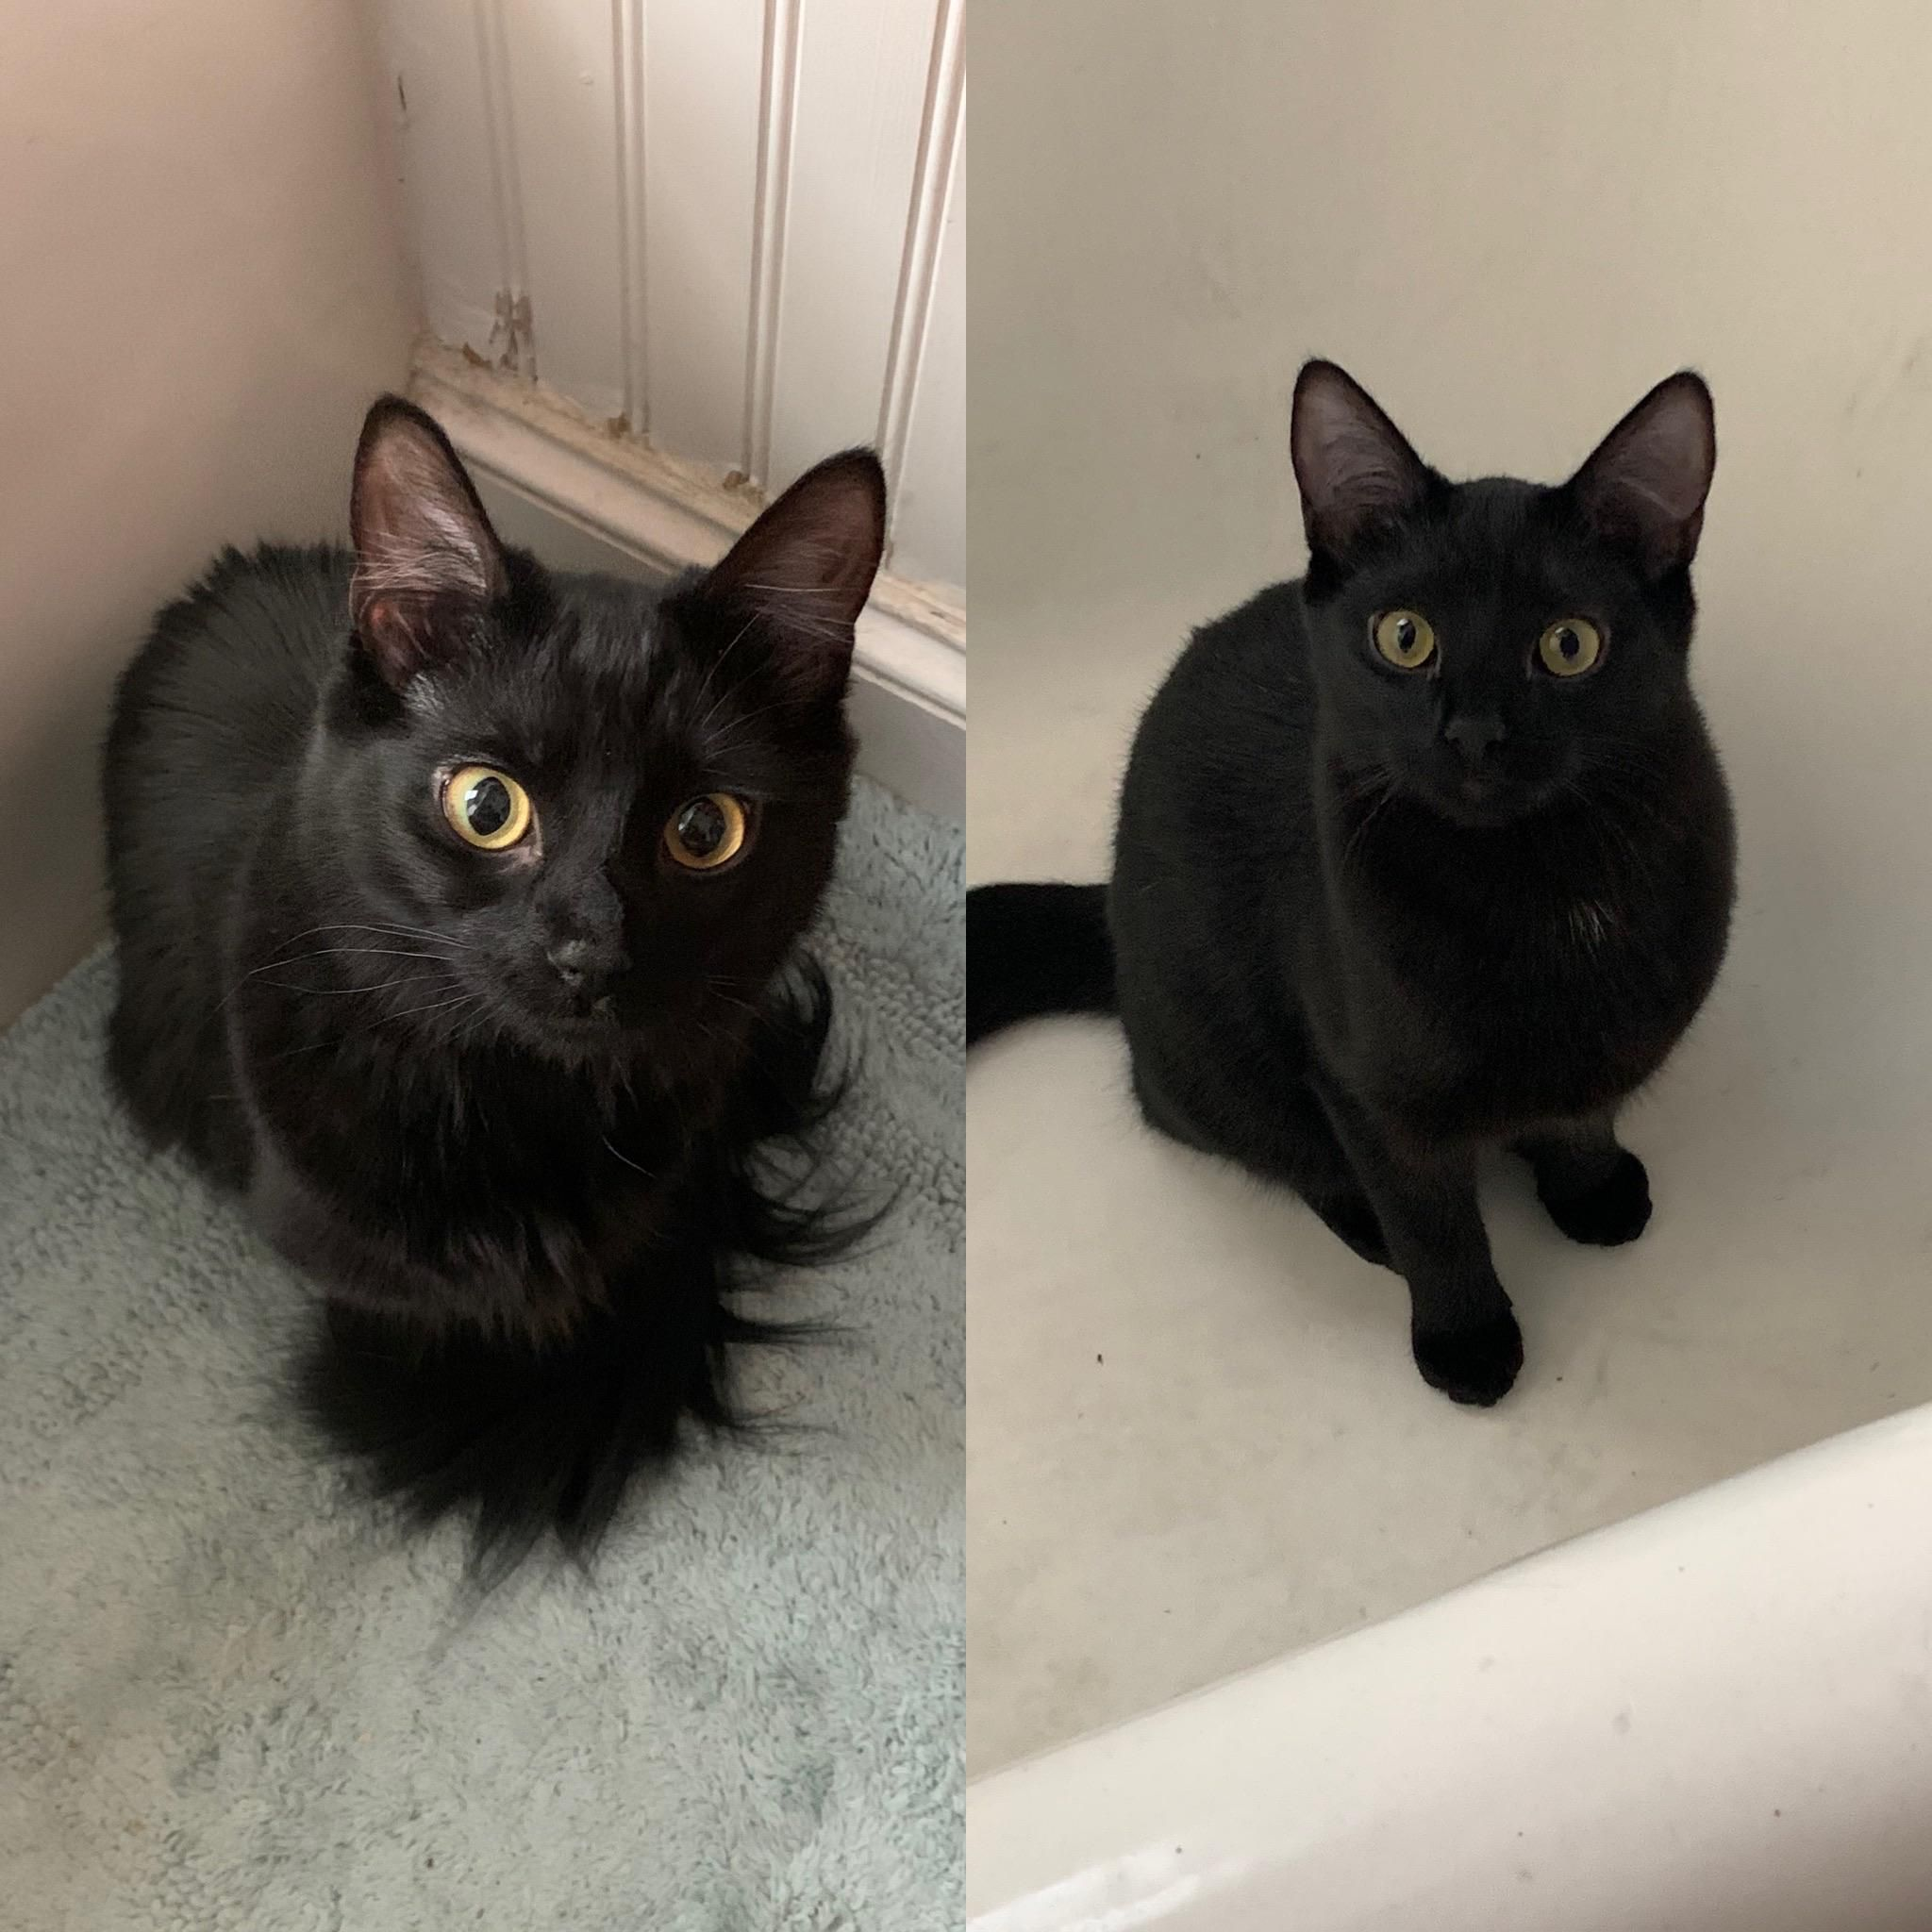 They Like To Stare At Me When I Go To The Bathroom The Little One On The Right Is In The Tub Her Sister Is On The Bath Mat In 2020